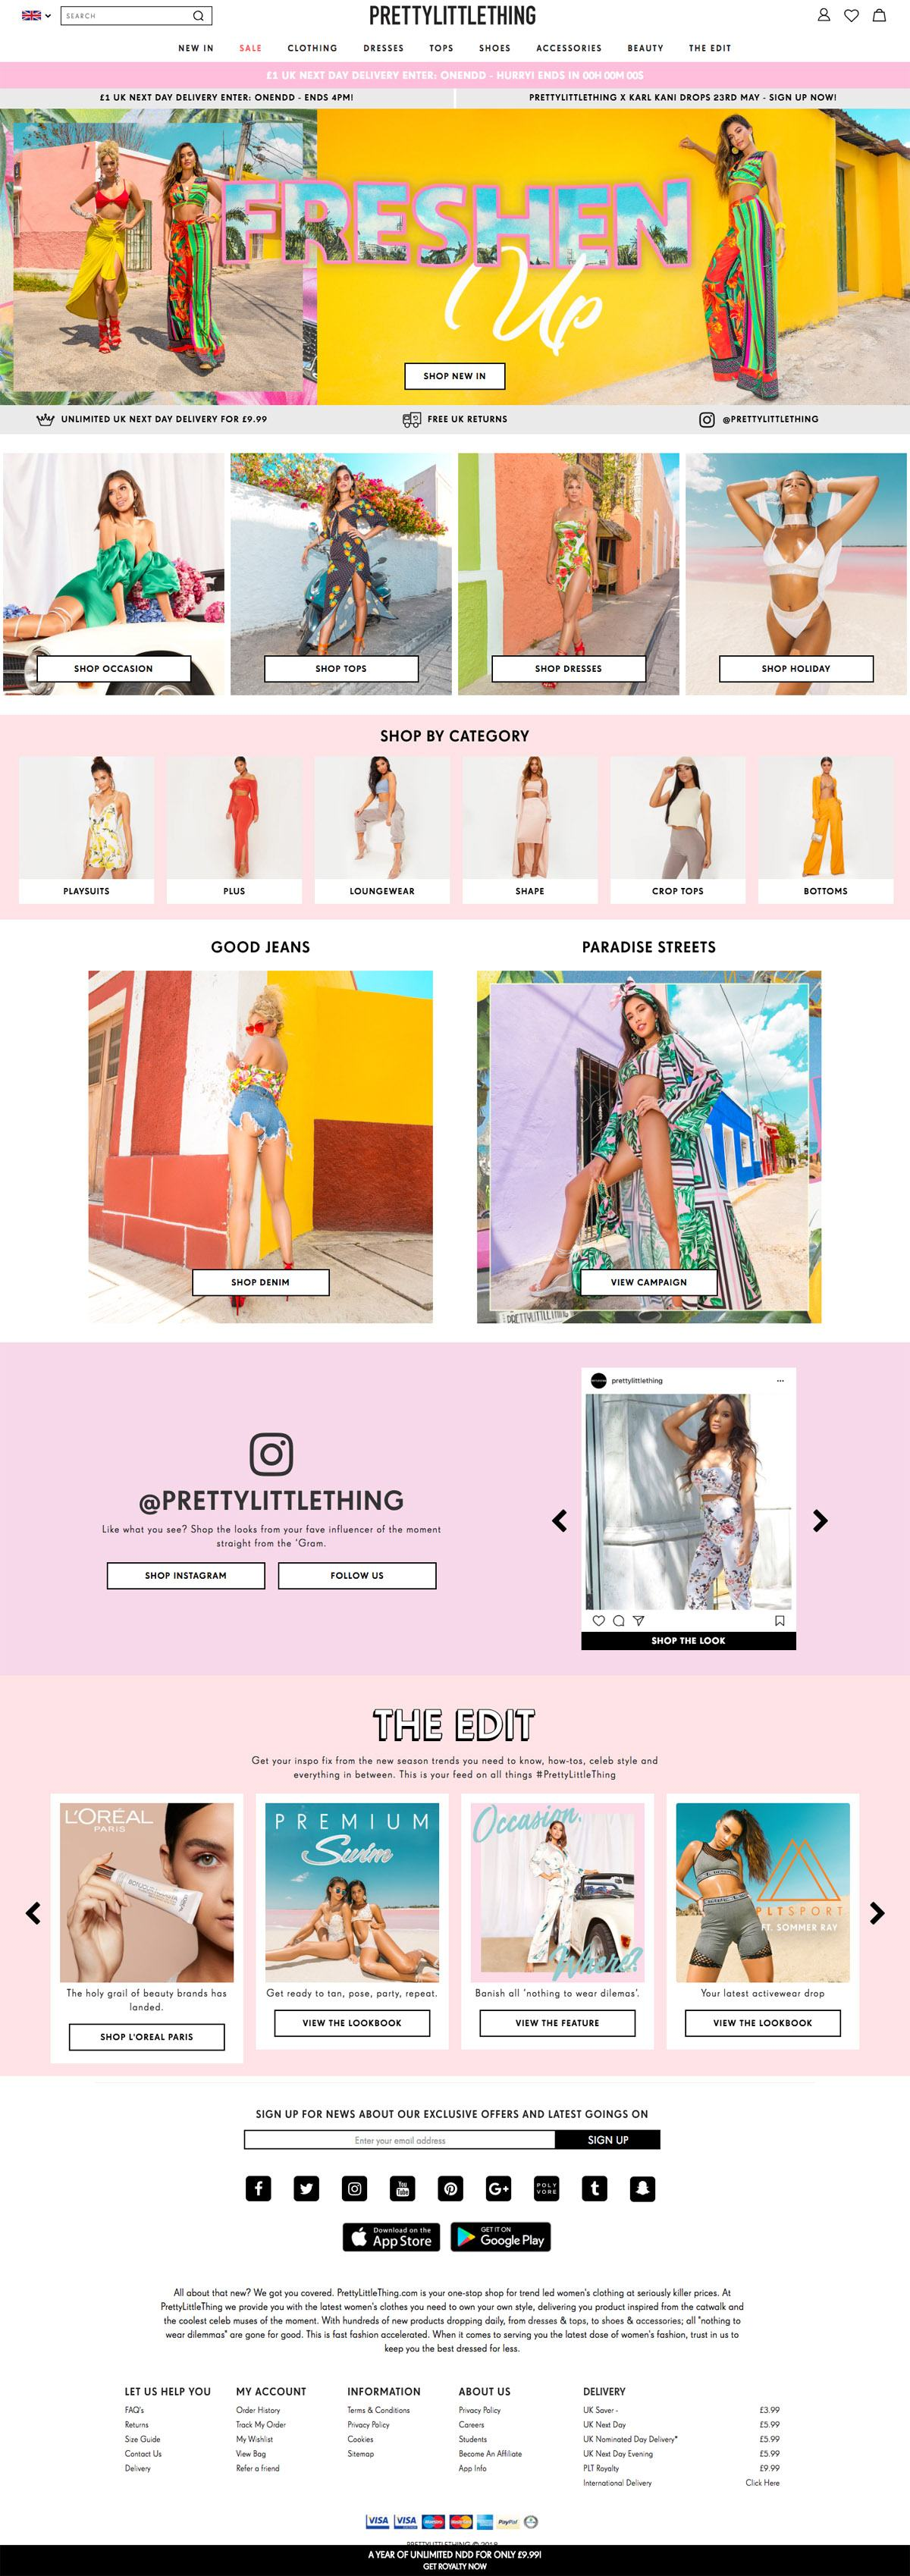 Pretty Little Thing Ecommerce Website Design Gallery Tech Inspiration